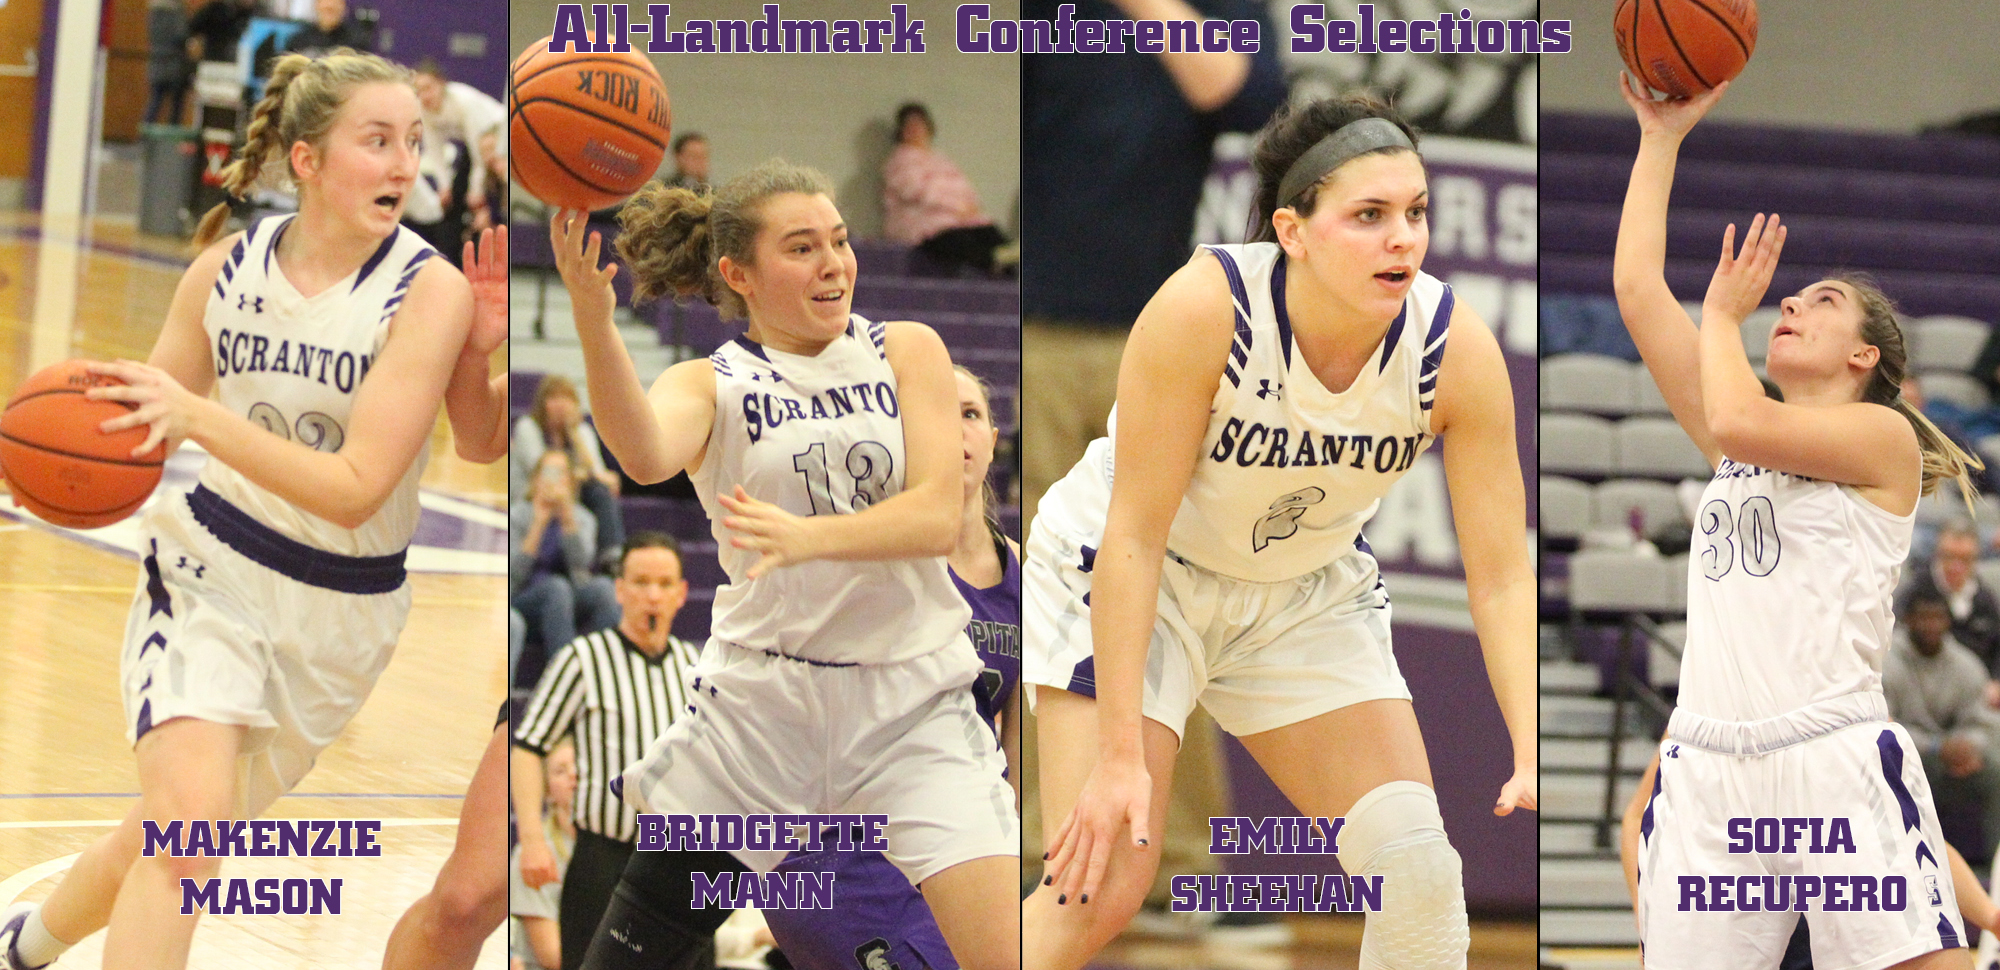 Mason Player of the Year/Sheehan Defensive Player of the Year to Headline All-Landmark Conference Selections for Women's Basketball